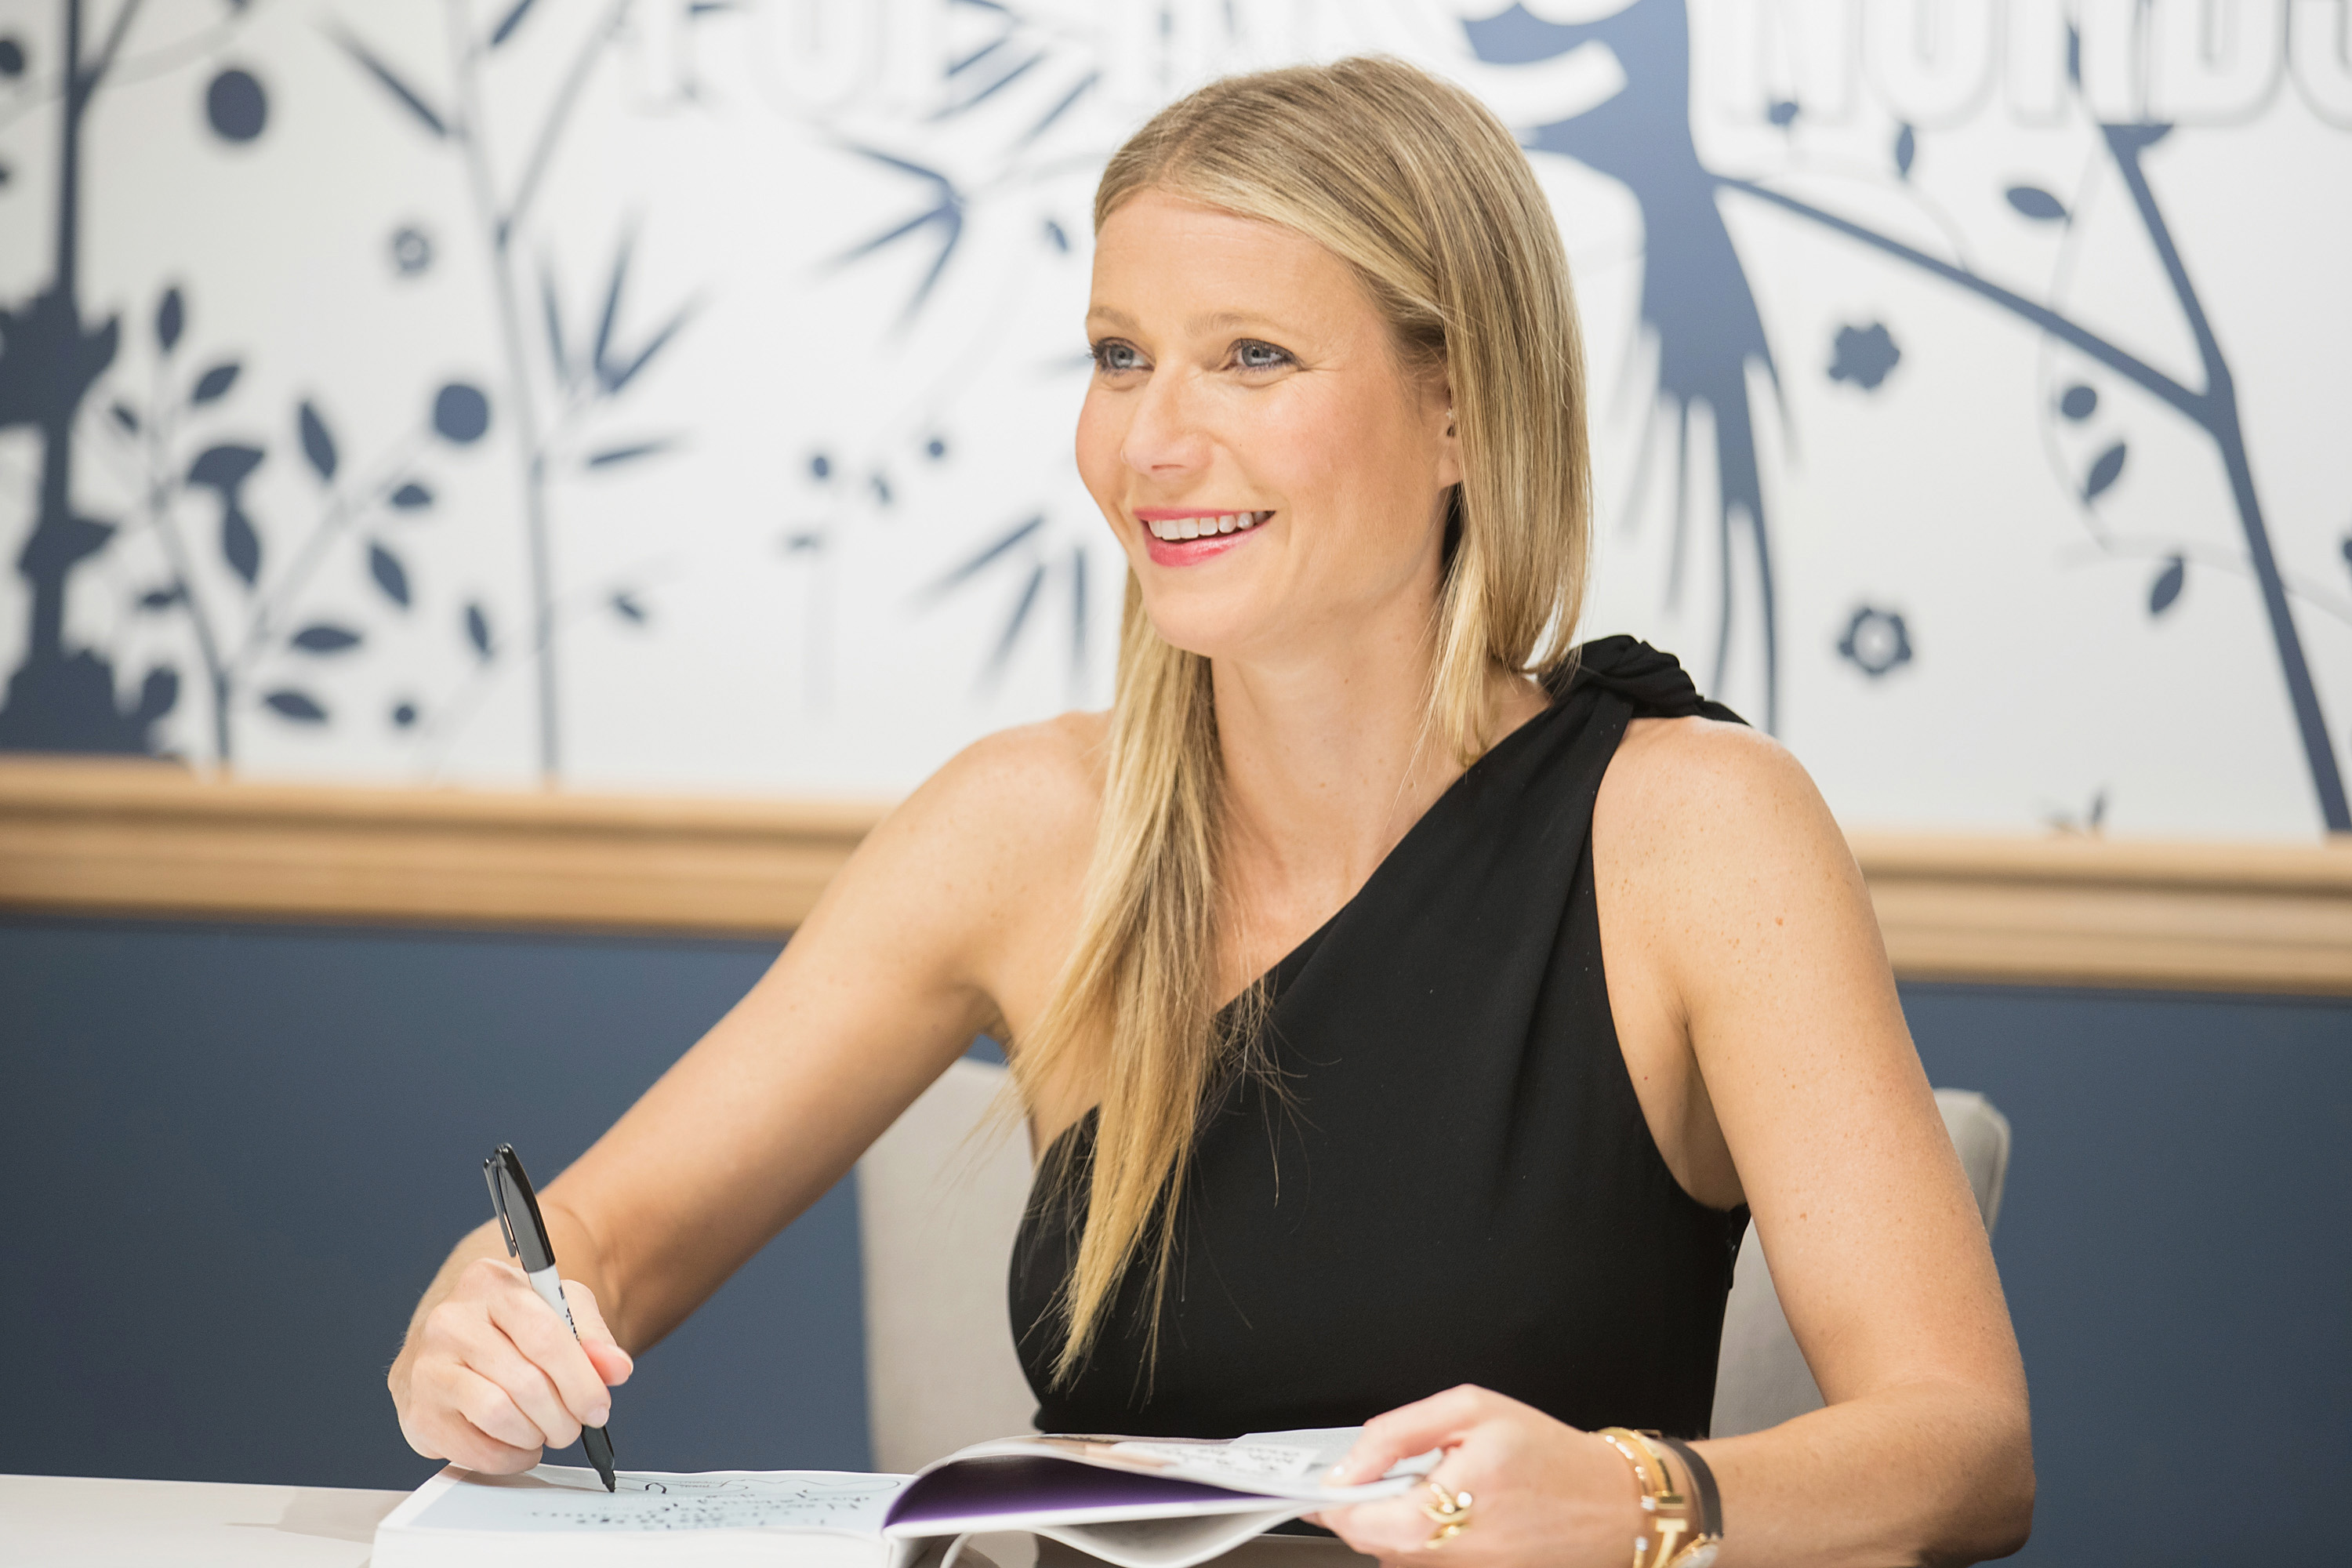 Gwyneth Paltrow visits goop-In@Nordstrom for Book Signingon May 19, 2017 in Seattle, Washington.